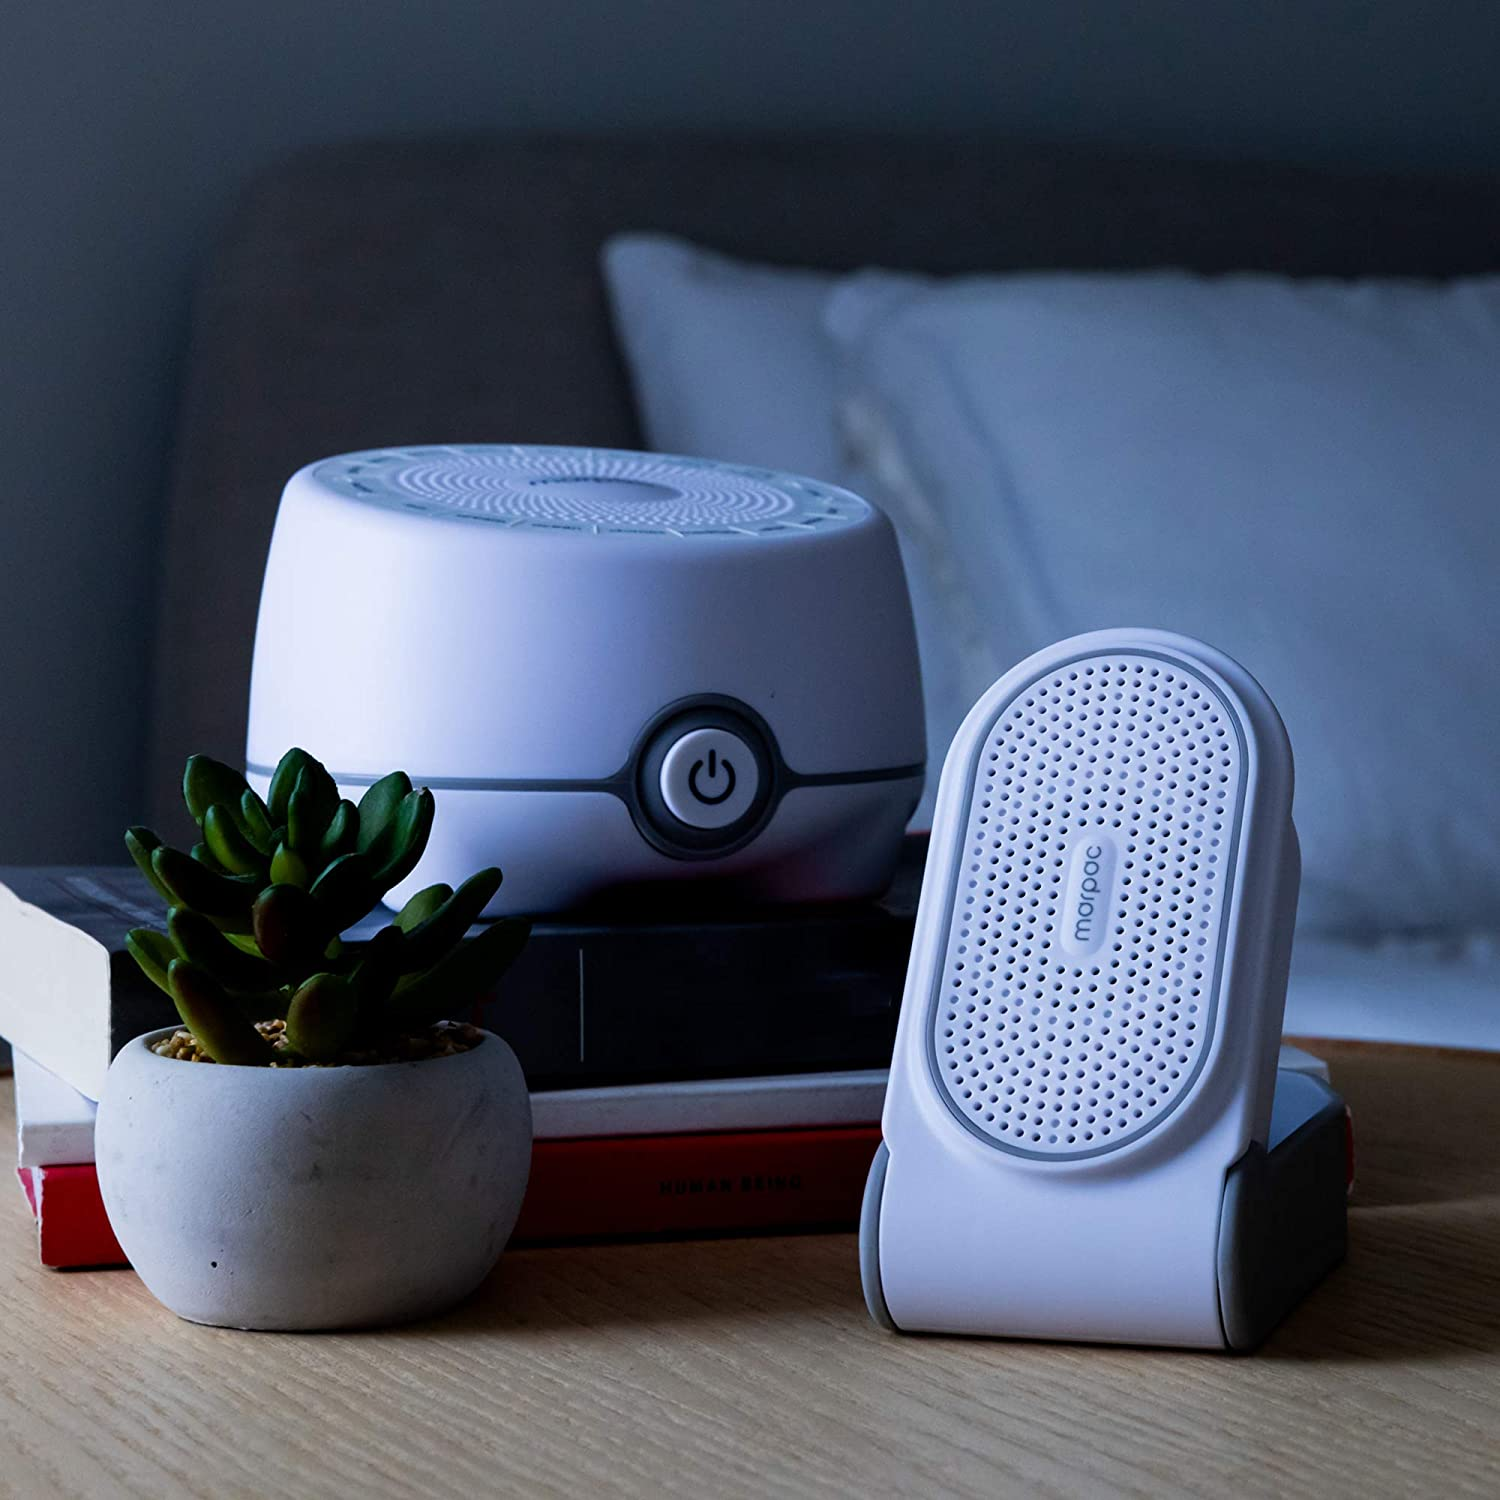 Yogasleep Road Warrior Bundle   Whish 16-Sound White Noise Machine & Go Portable Travel White Noise Machine   Travel, Office Privacy, Sleep Therapy, Concentration   for Adults & Baby